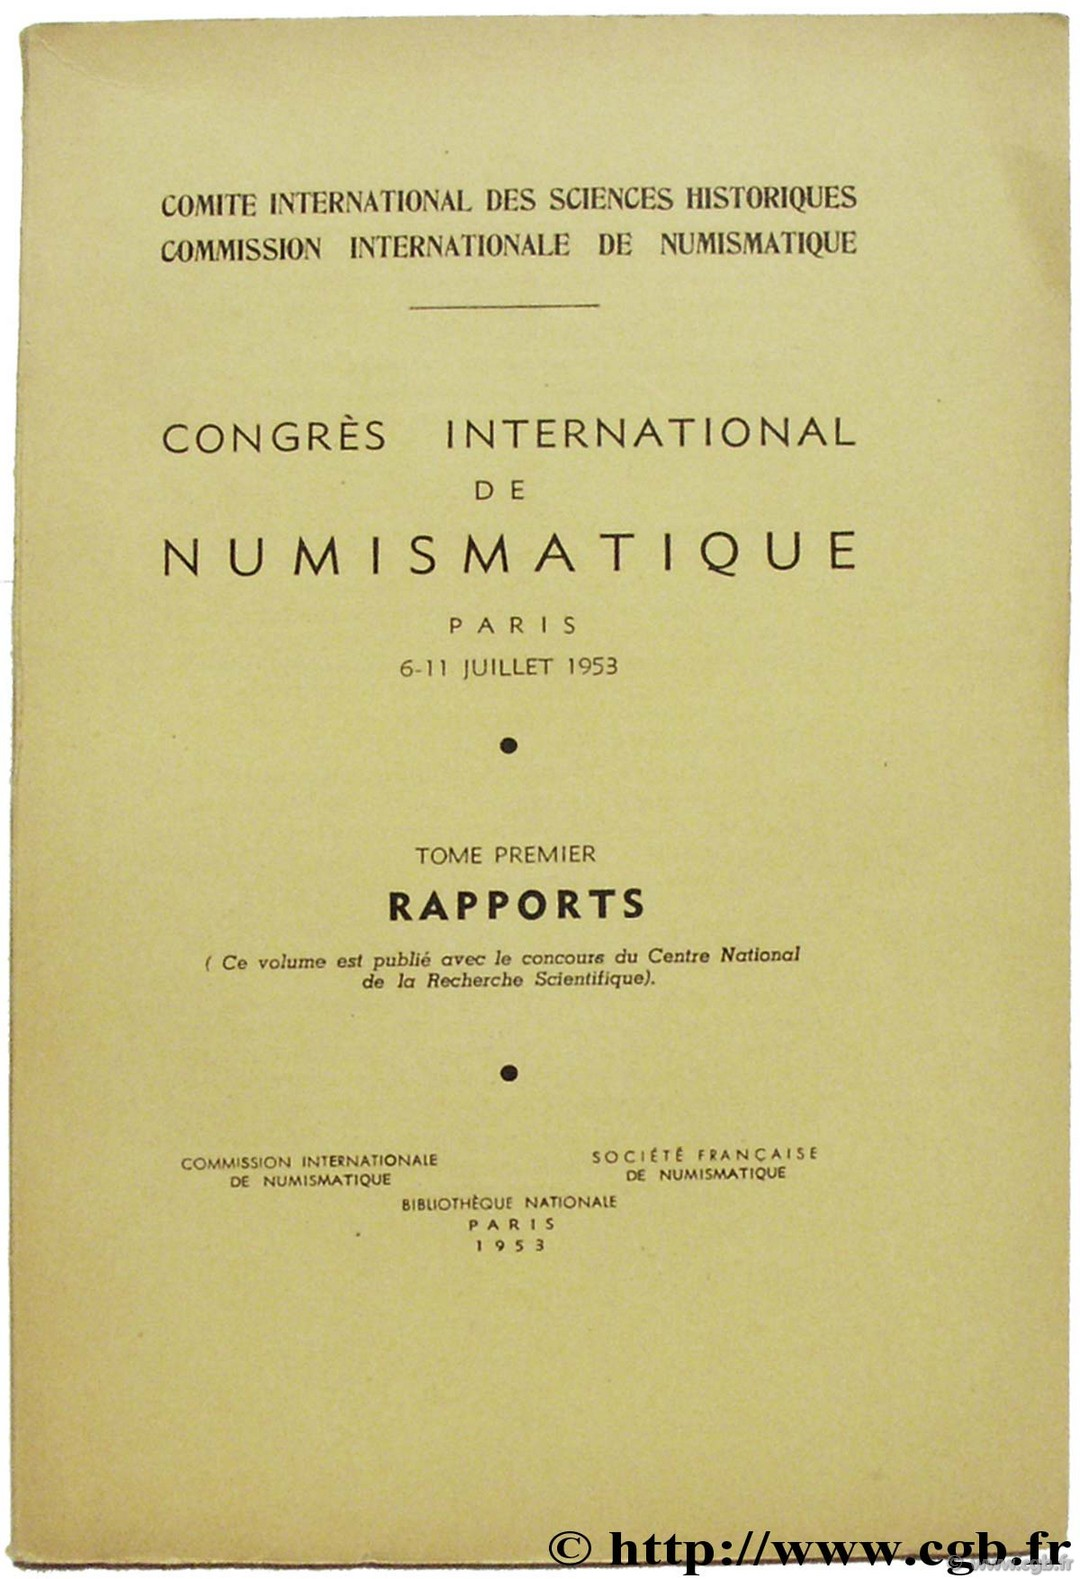 Congrès International de Numismatique BABELON J., LAFAURIE J.